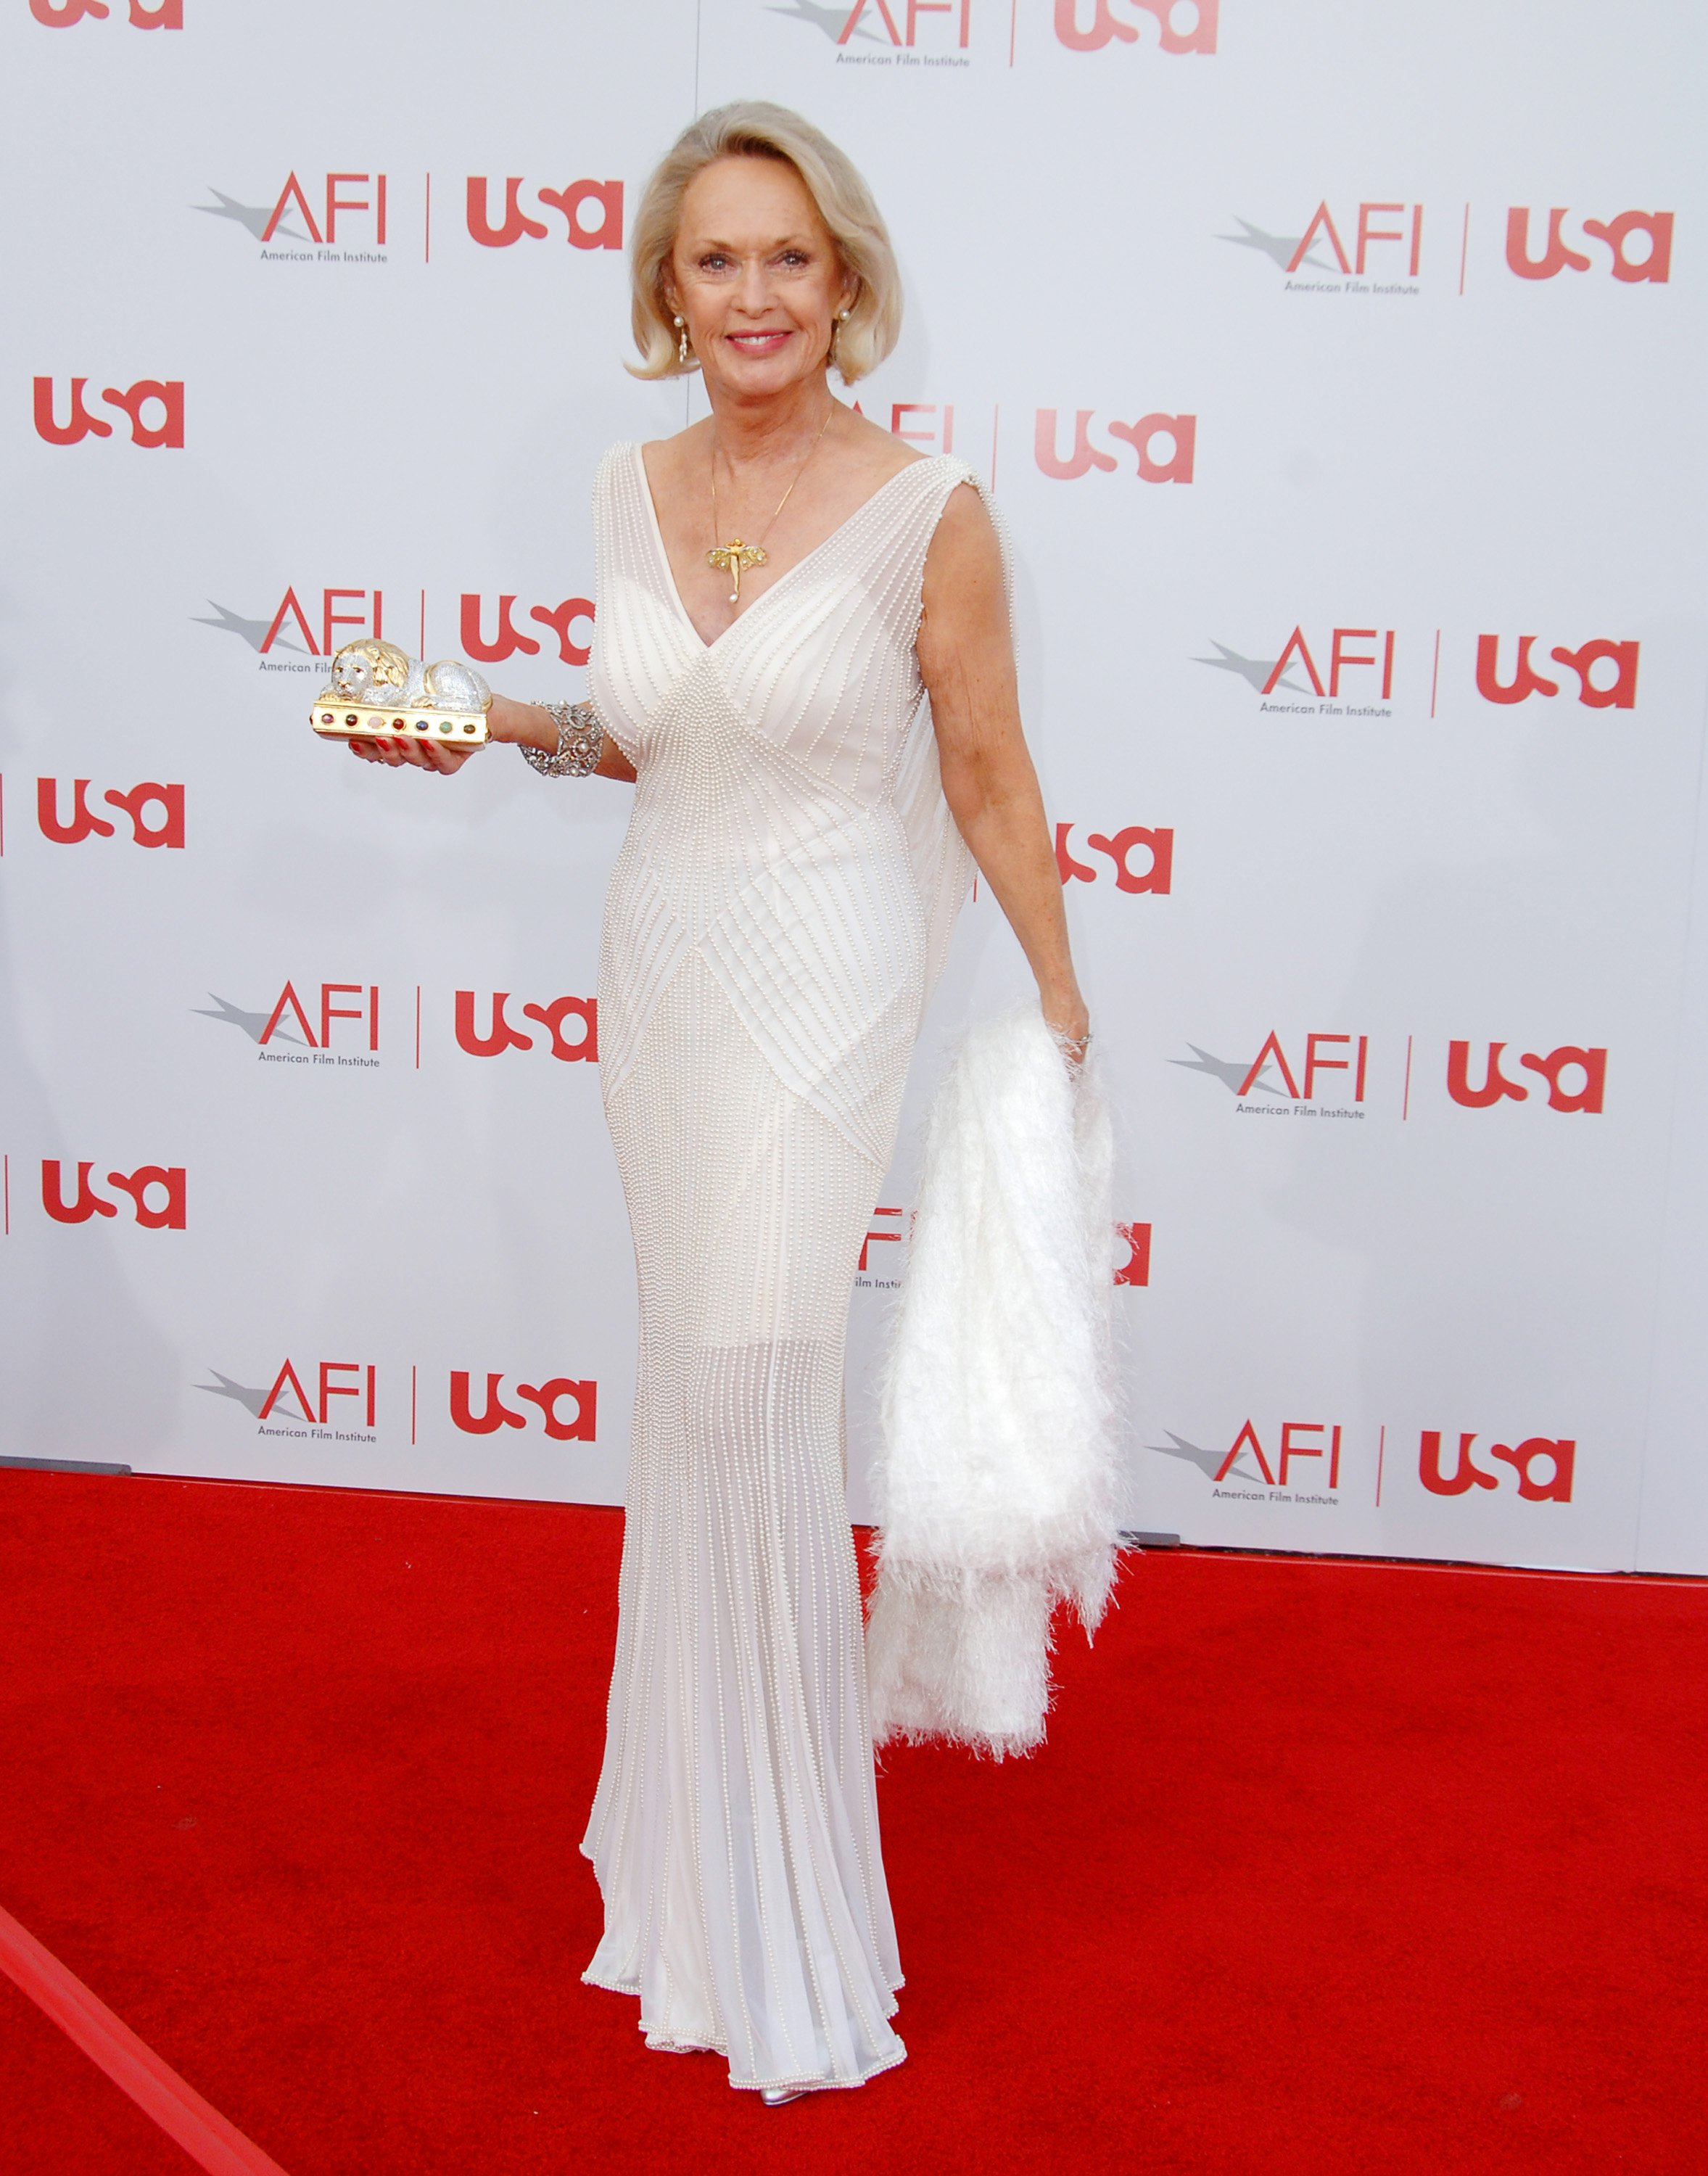 Tippi Hedren during 34th Annual AFI Lifetime Achievement Award: A Tribute to Sean Connery - Arrivals at Kodak Theatre in Hollywood, California, United States | Photo: Getty Images